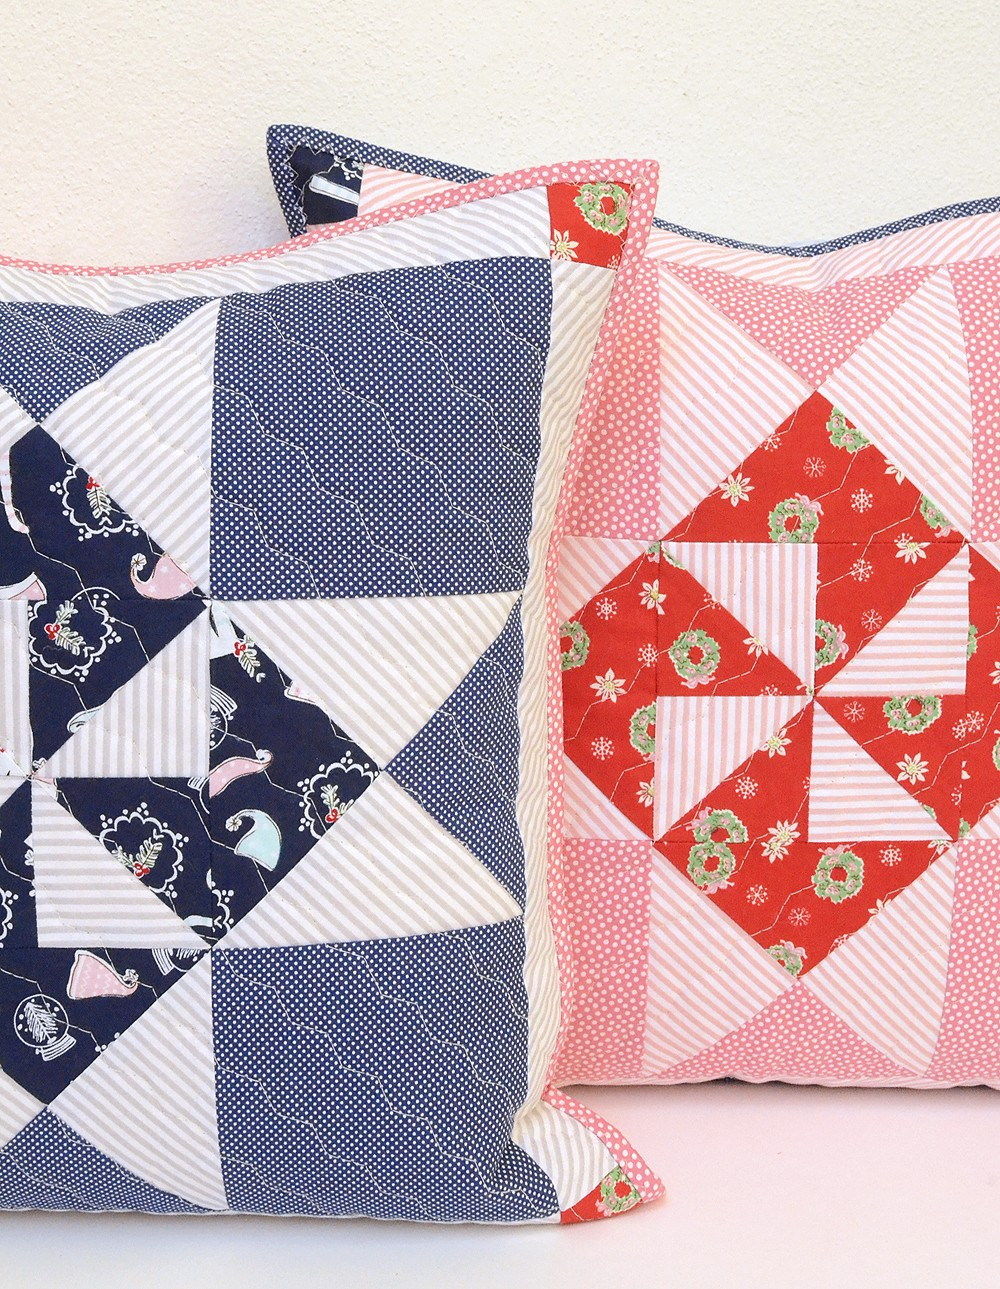 Bernina Tutorial: Patchwork-Stern Kissen